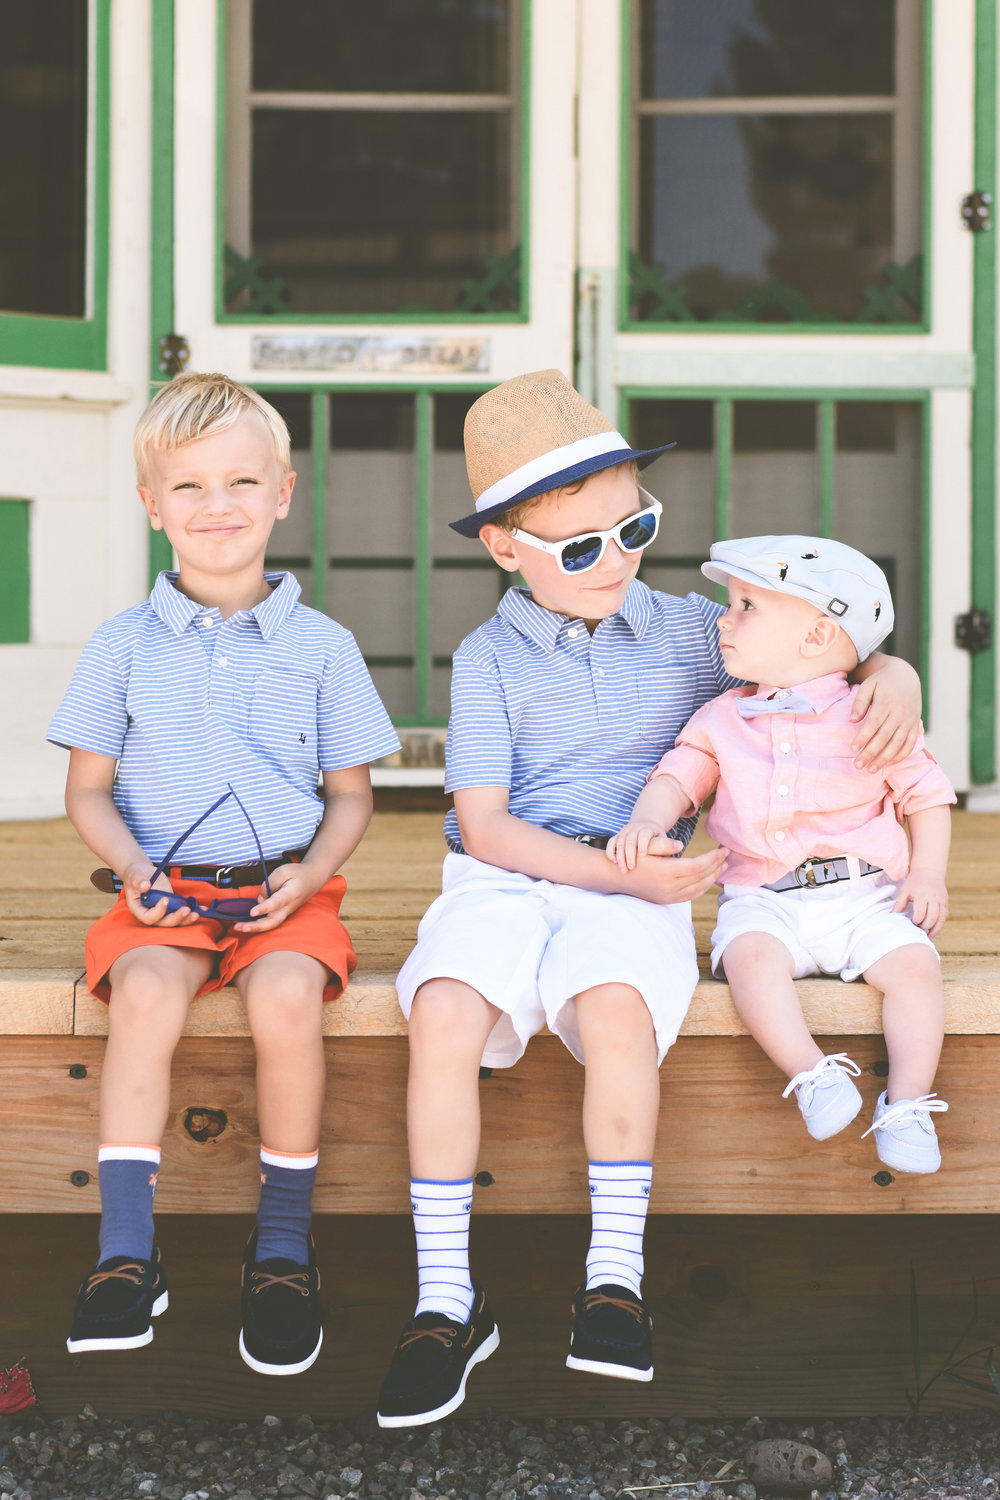 styling a little boys outfit with Janie and Jack. Lifestyle photography outfits